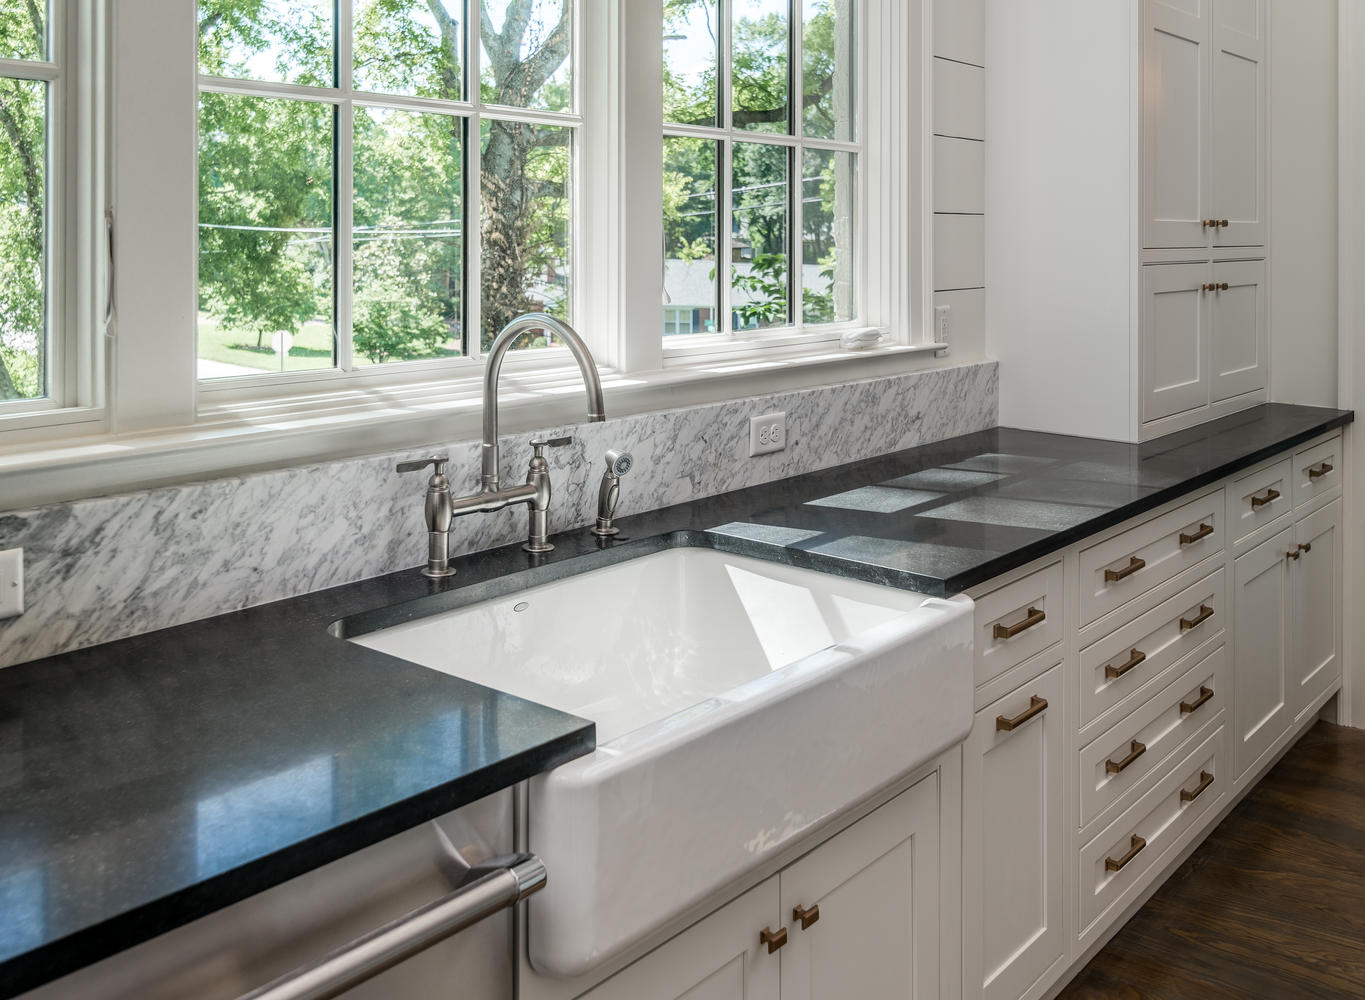 Gallery of Kitchen & Bath Cabinetry   Opus Luxury Cabinets